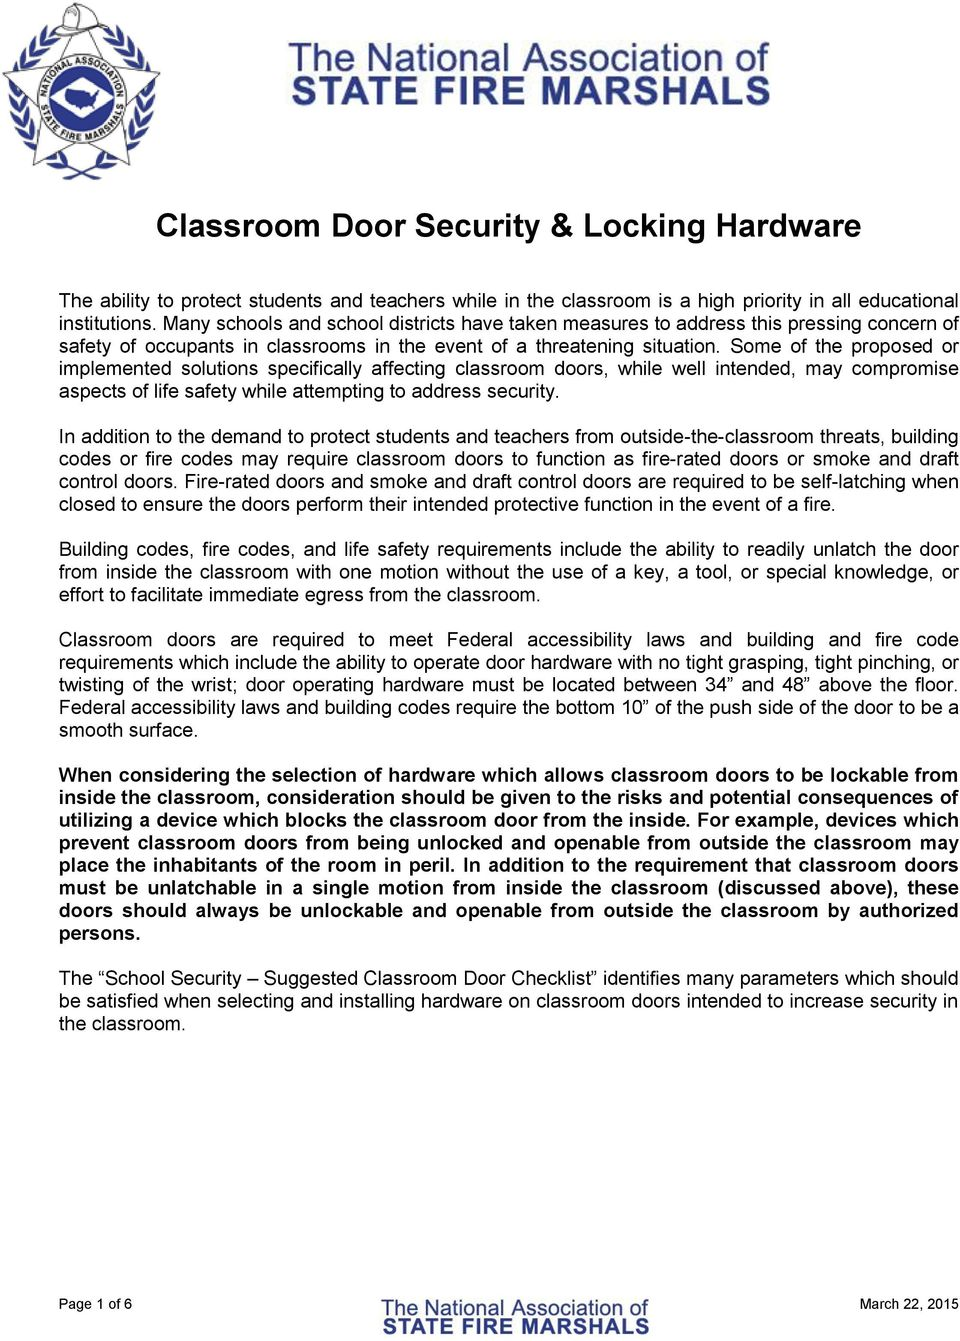 Some of the proposed or implemented solutions specifically affecting classroom doors, while well intended, may compromise aspects of life safety while attempting to address security.